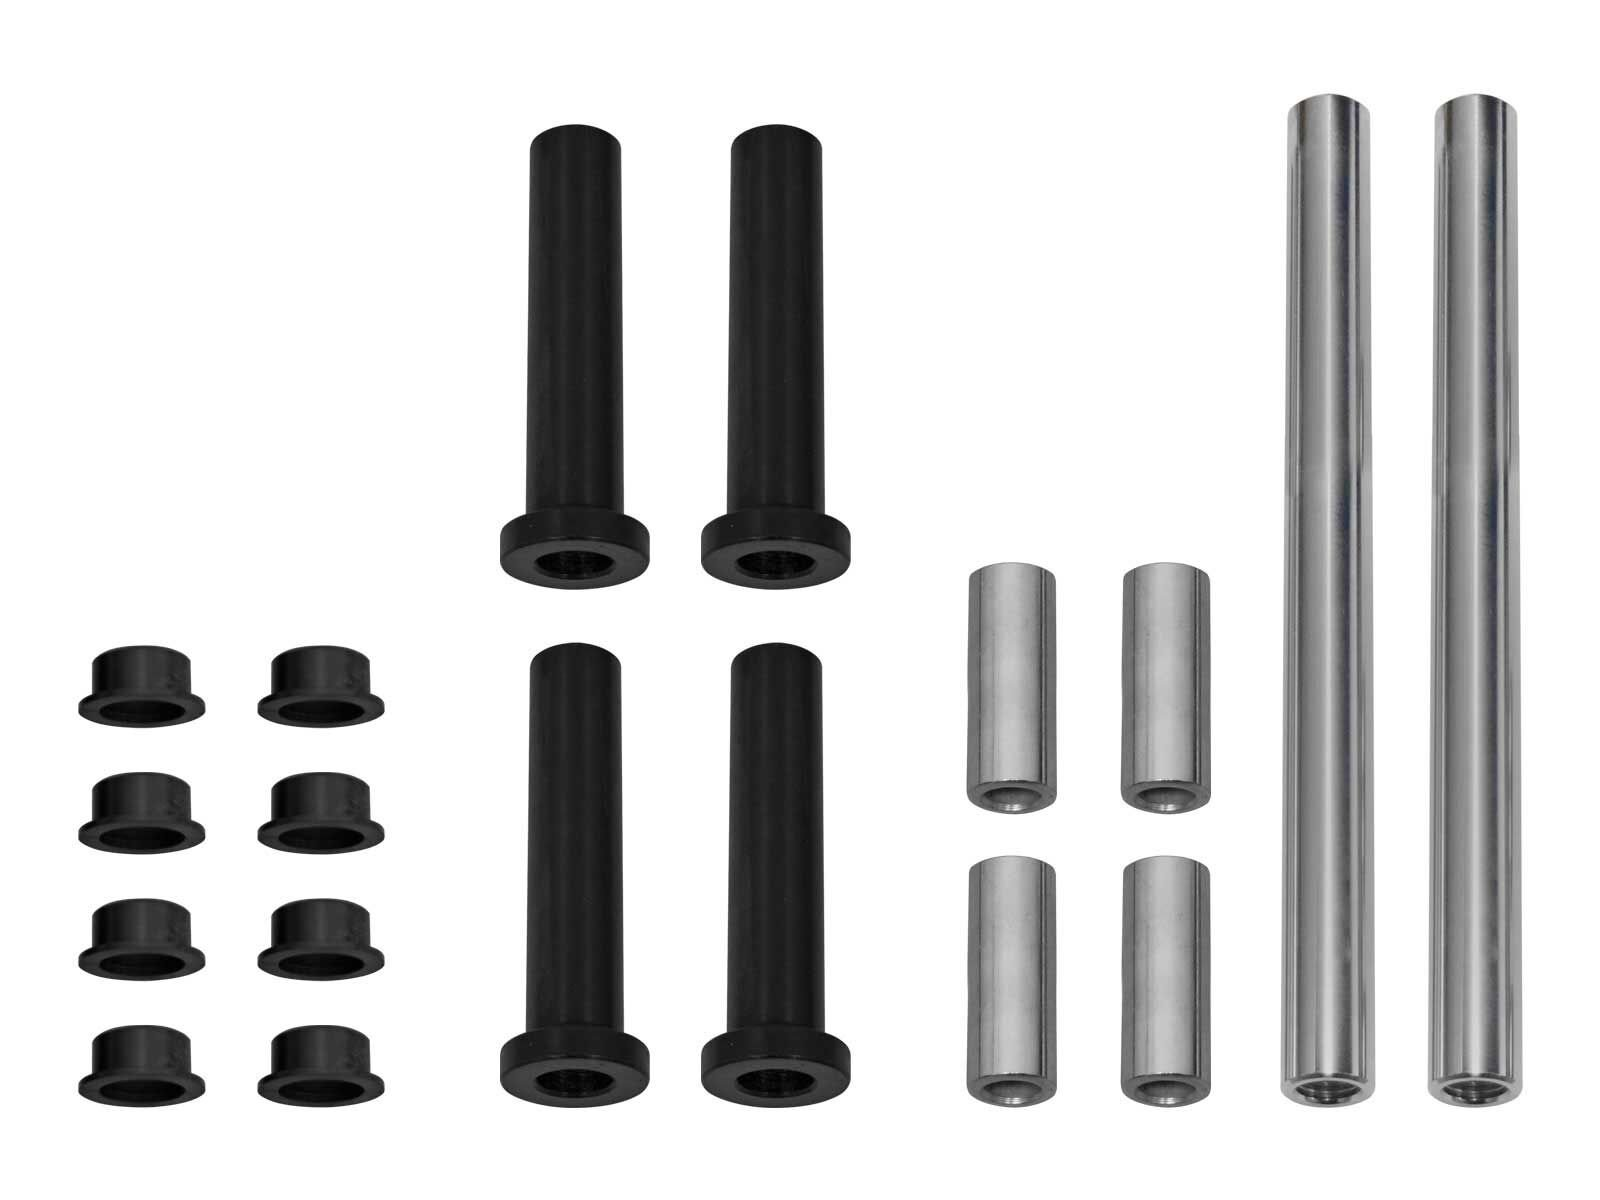 SuperATV HDPE A-arm/Control Arms Bushing Kit for Can-Am Commander 800/1000 / Max - Replaces Front Upper and Lower